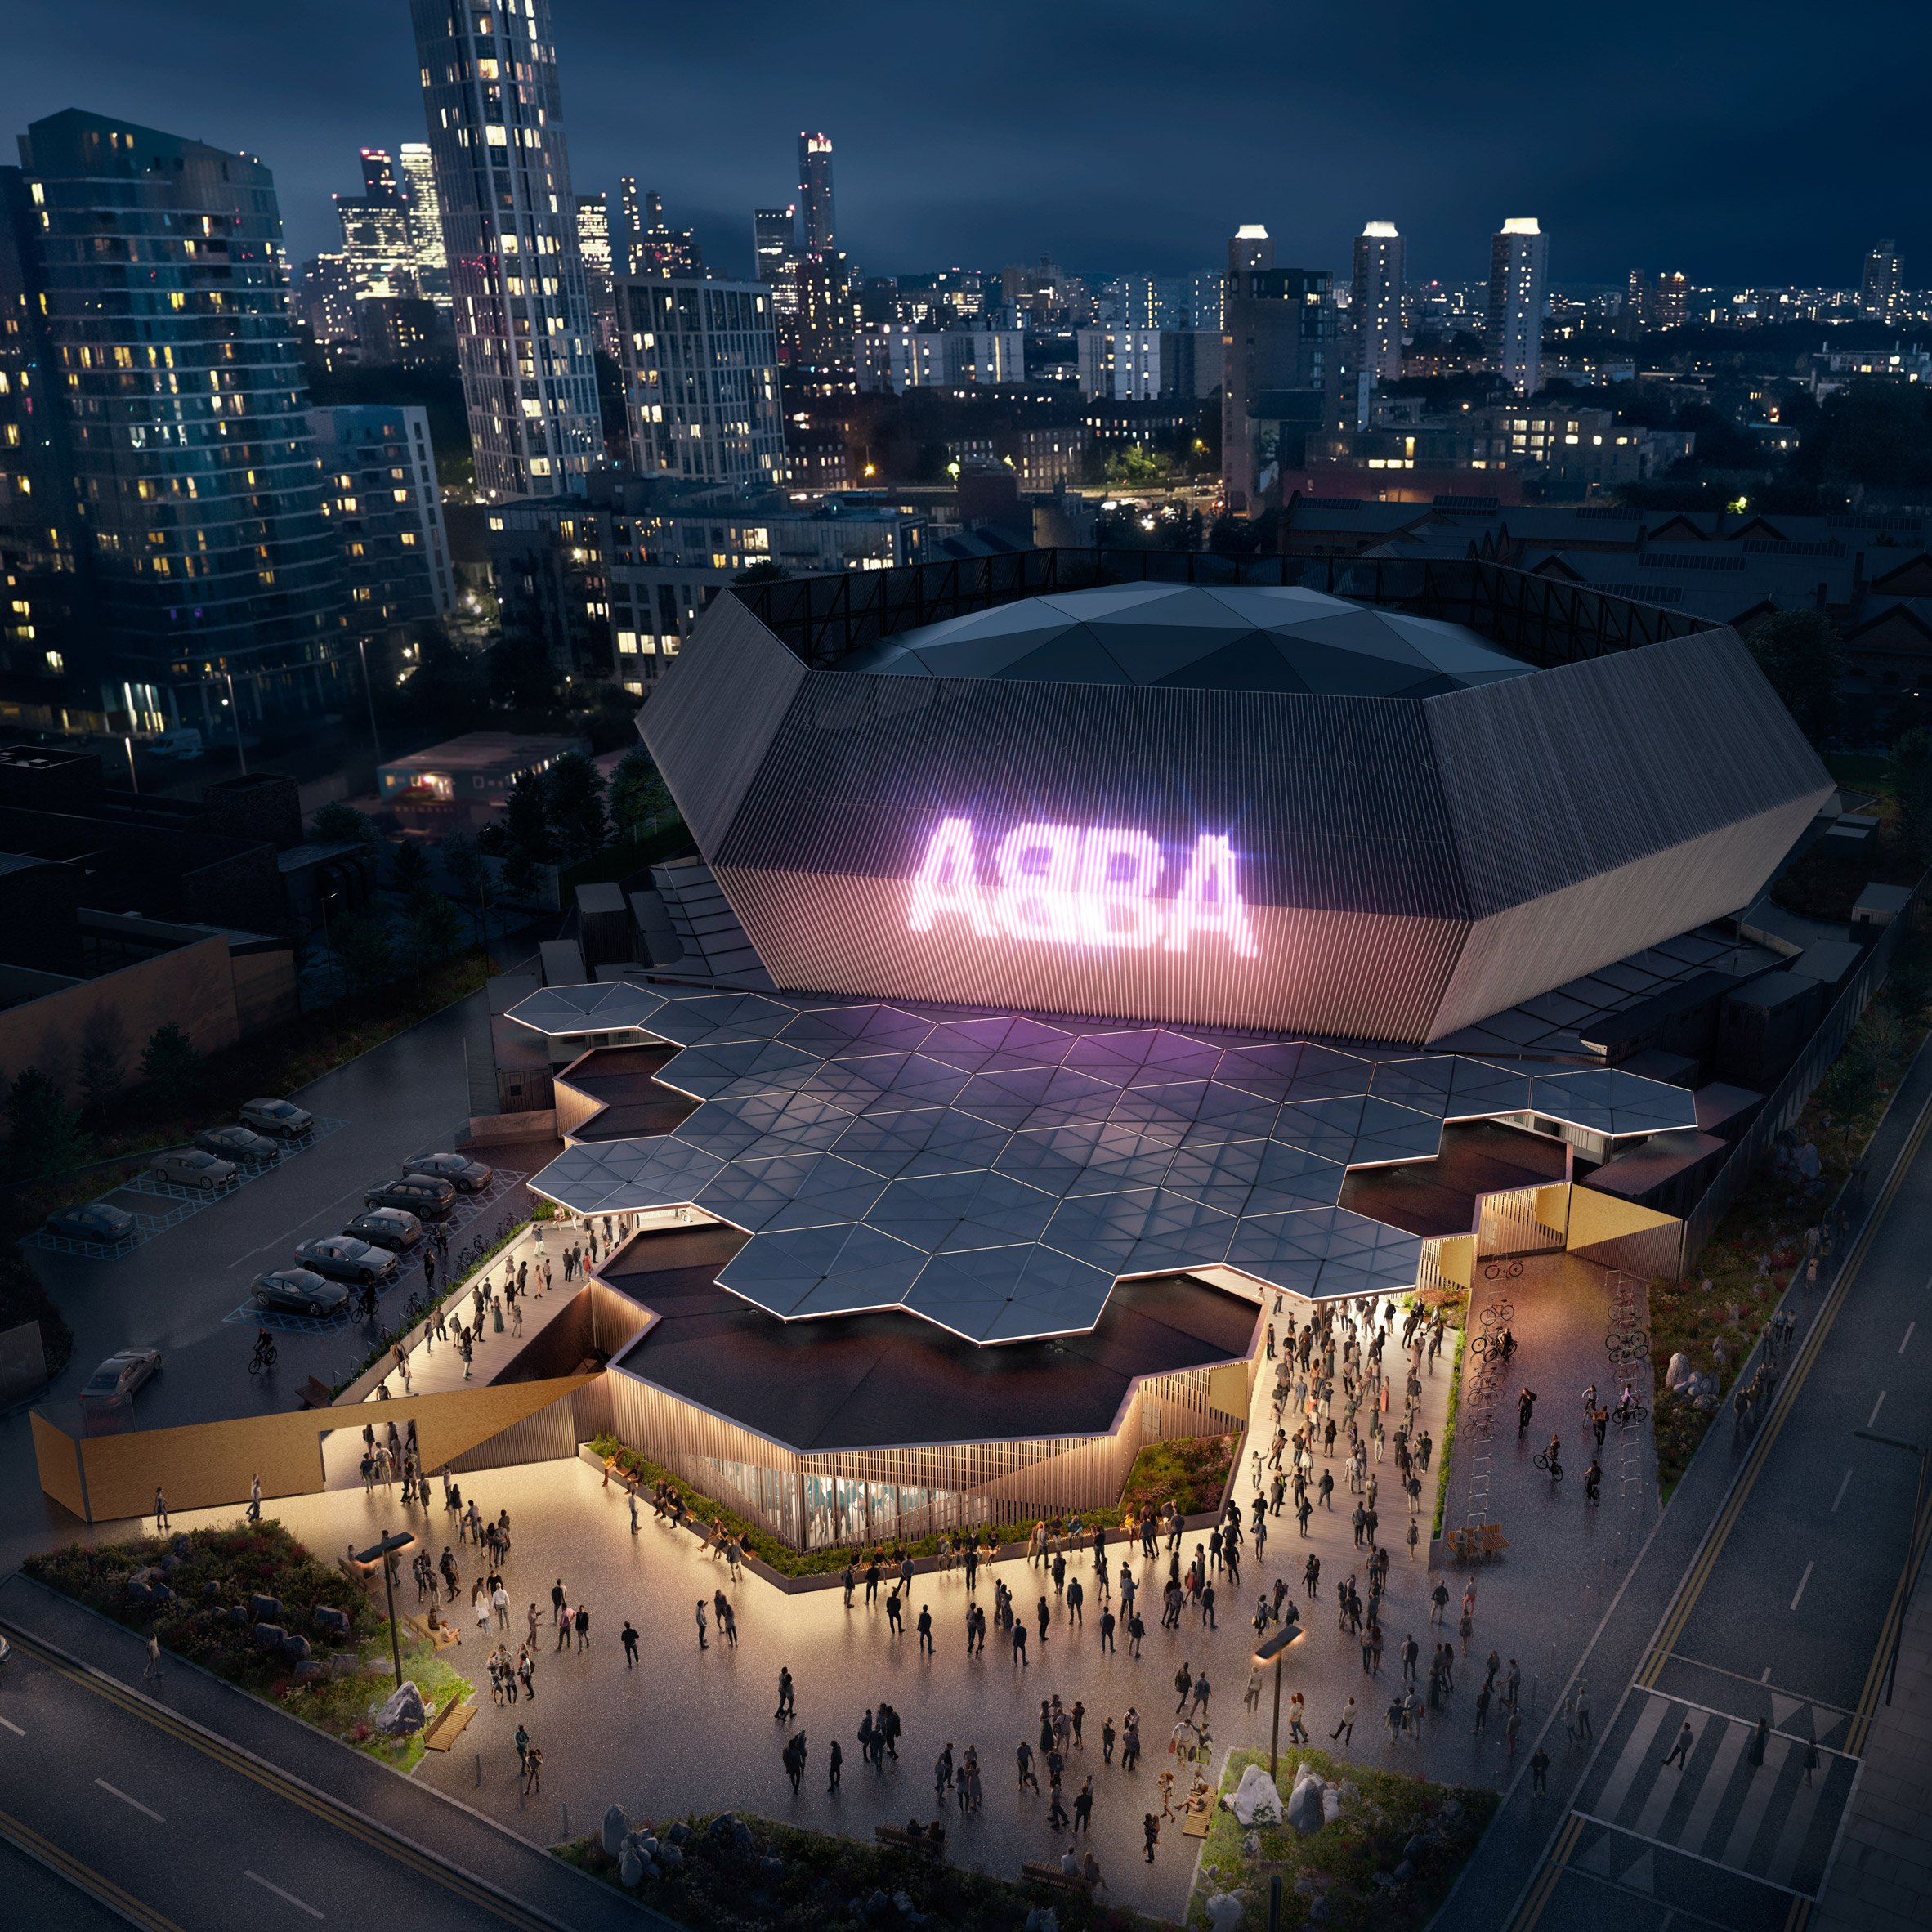 Hexagonal arena to designed for ABBA reunion tour by Stufish